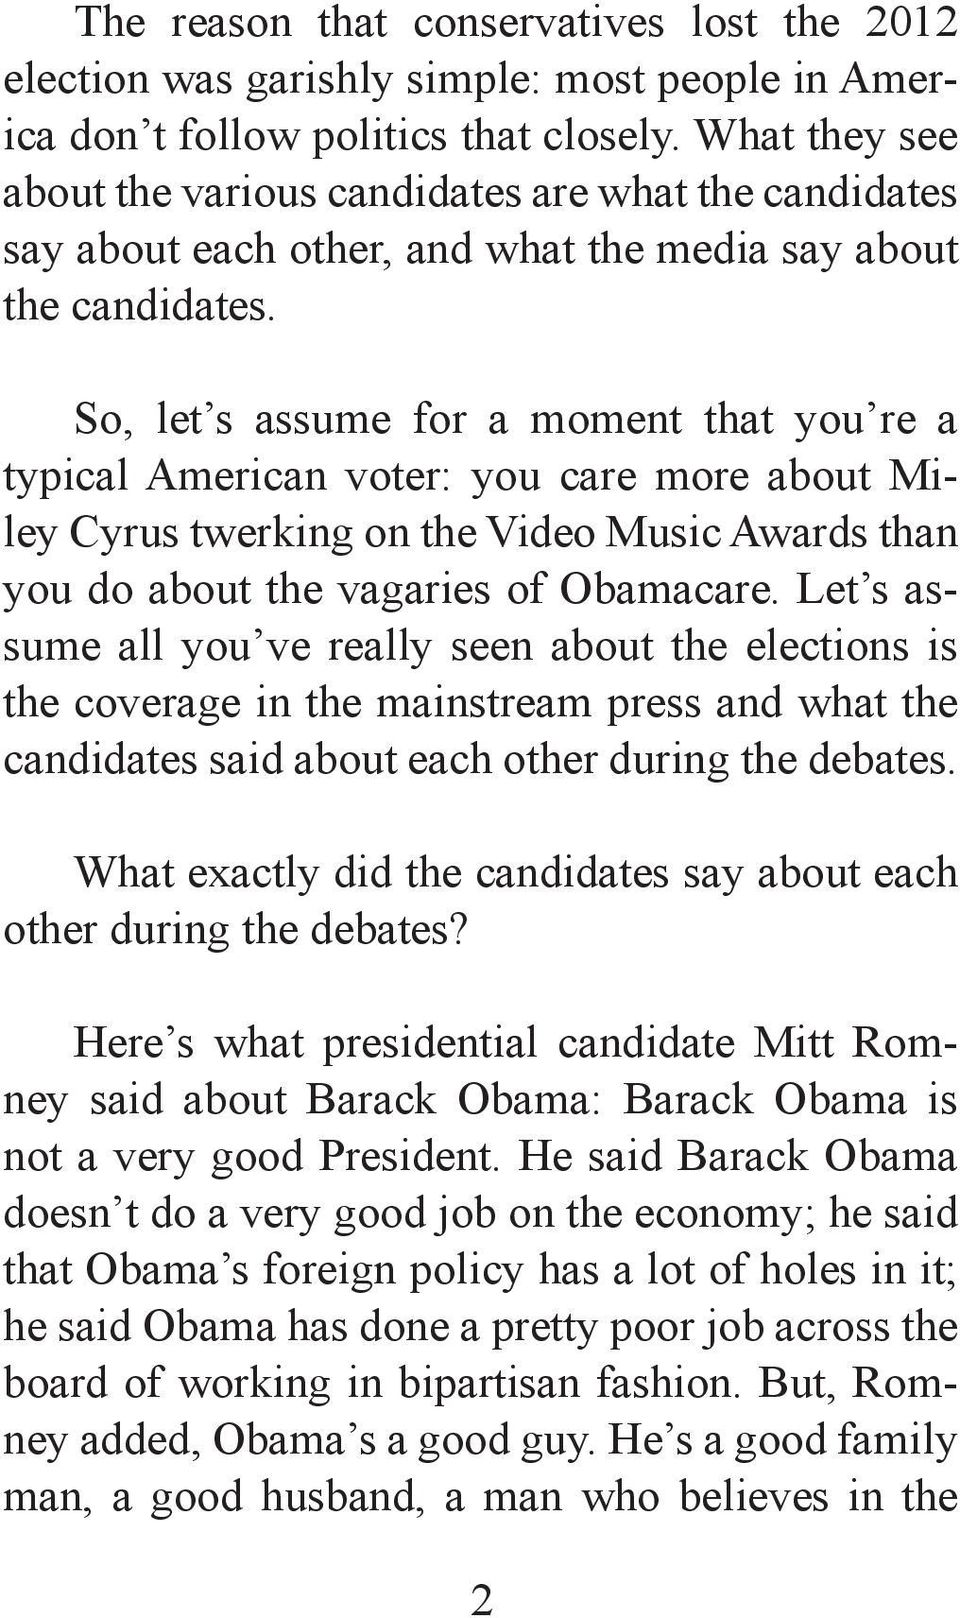 So, let s assume for a moment that you re a typical American voter: you care more about Miley Cyrus twerking on the Video Music Awards than you do about the vagaries of Obamacare.